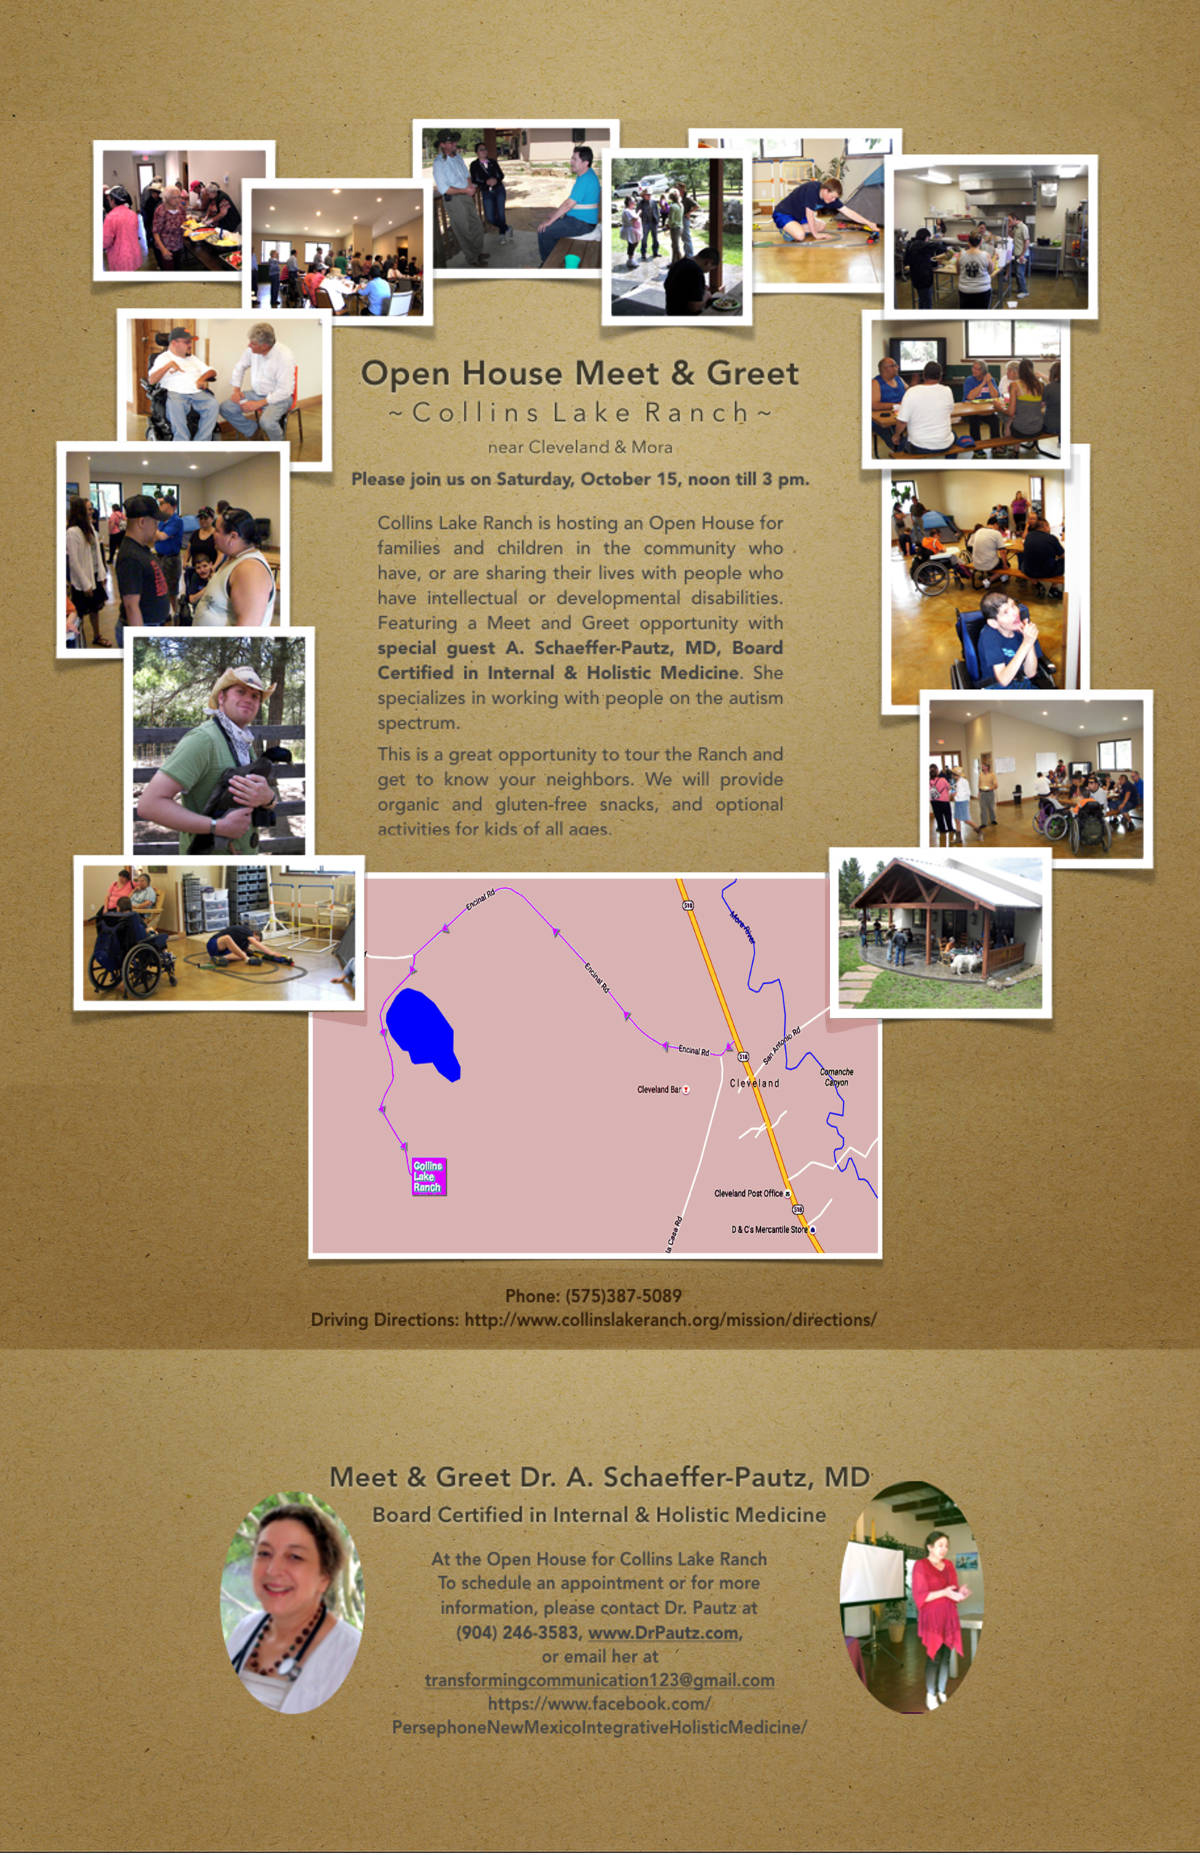 Dr. Pautz Collins Lake Ranch Open House Meet & Greet October 2016